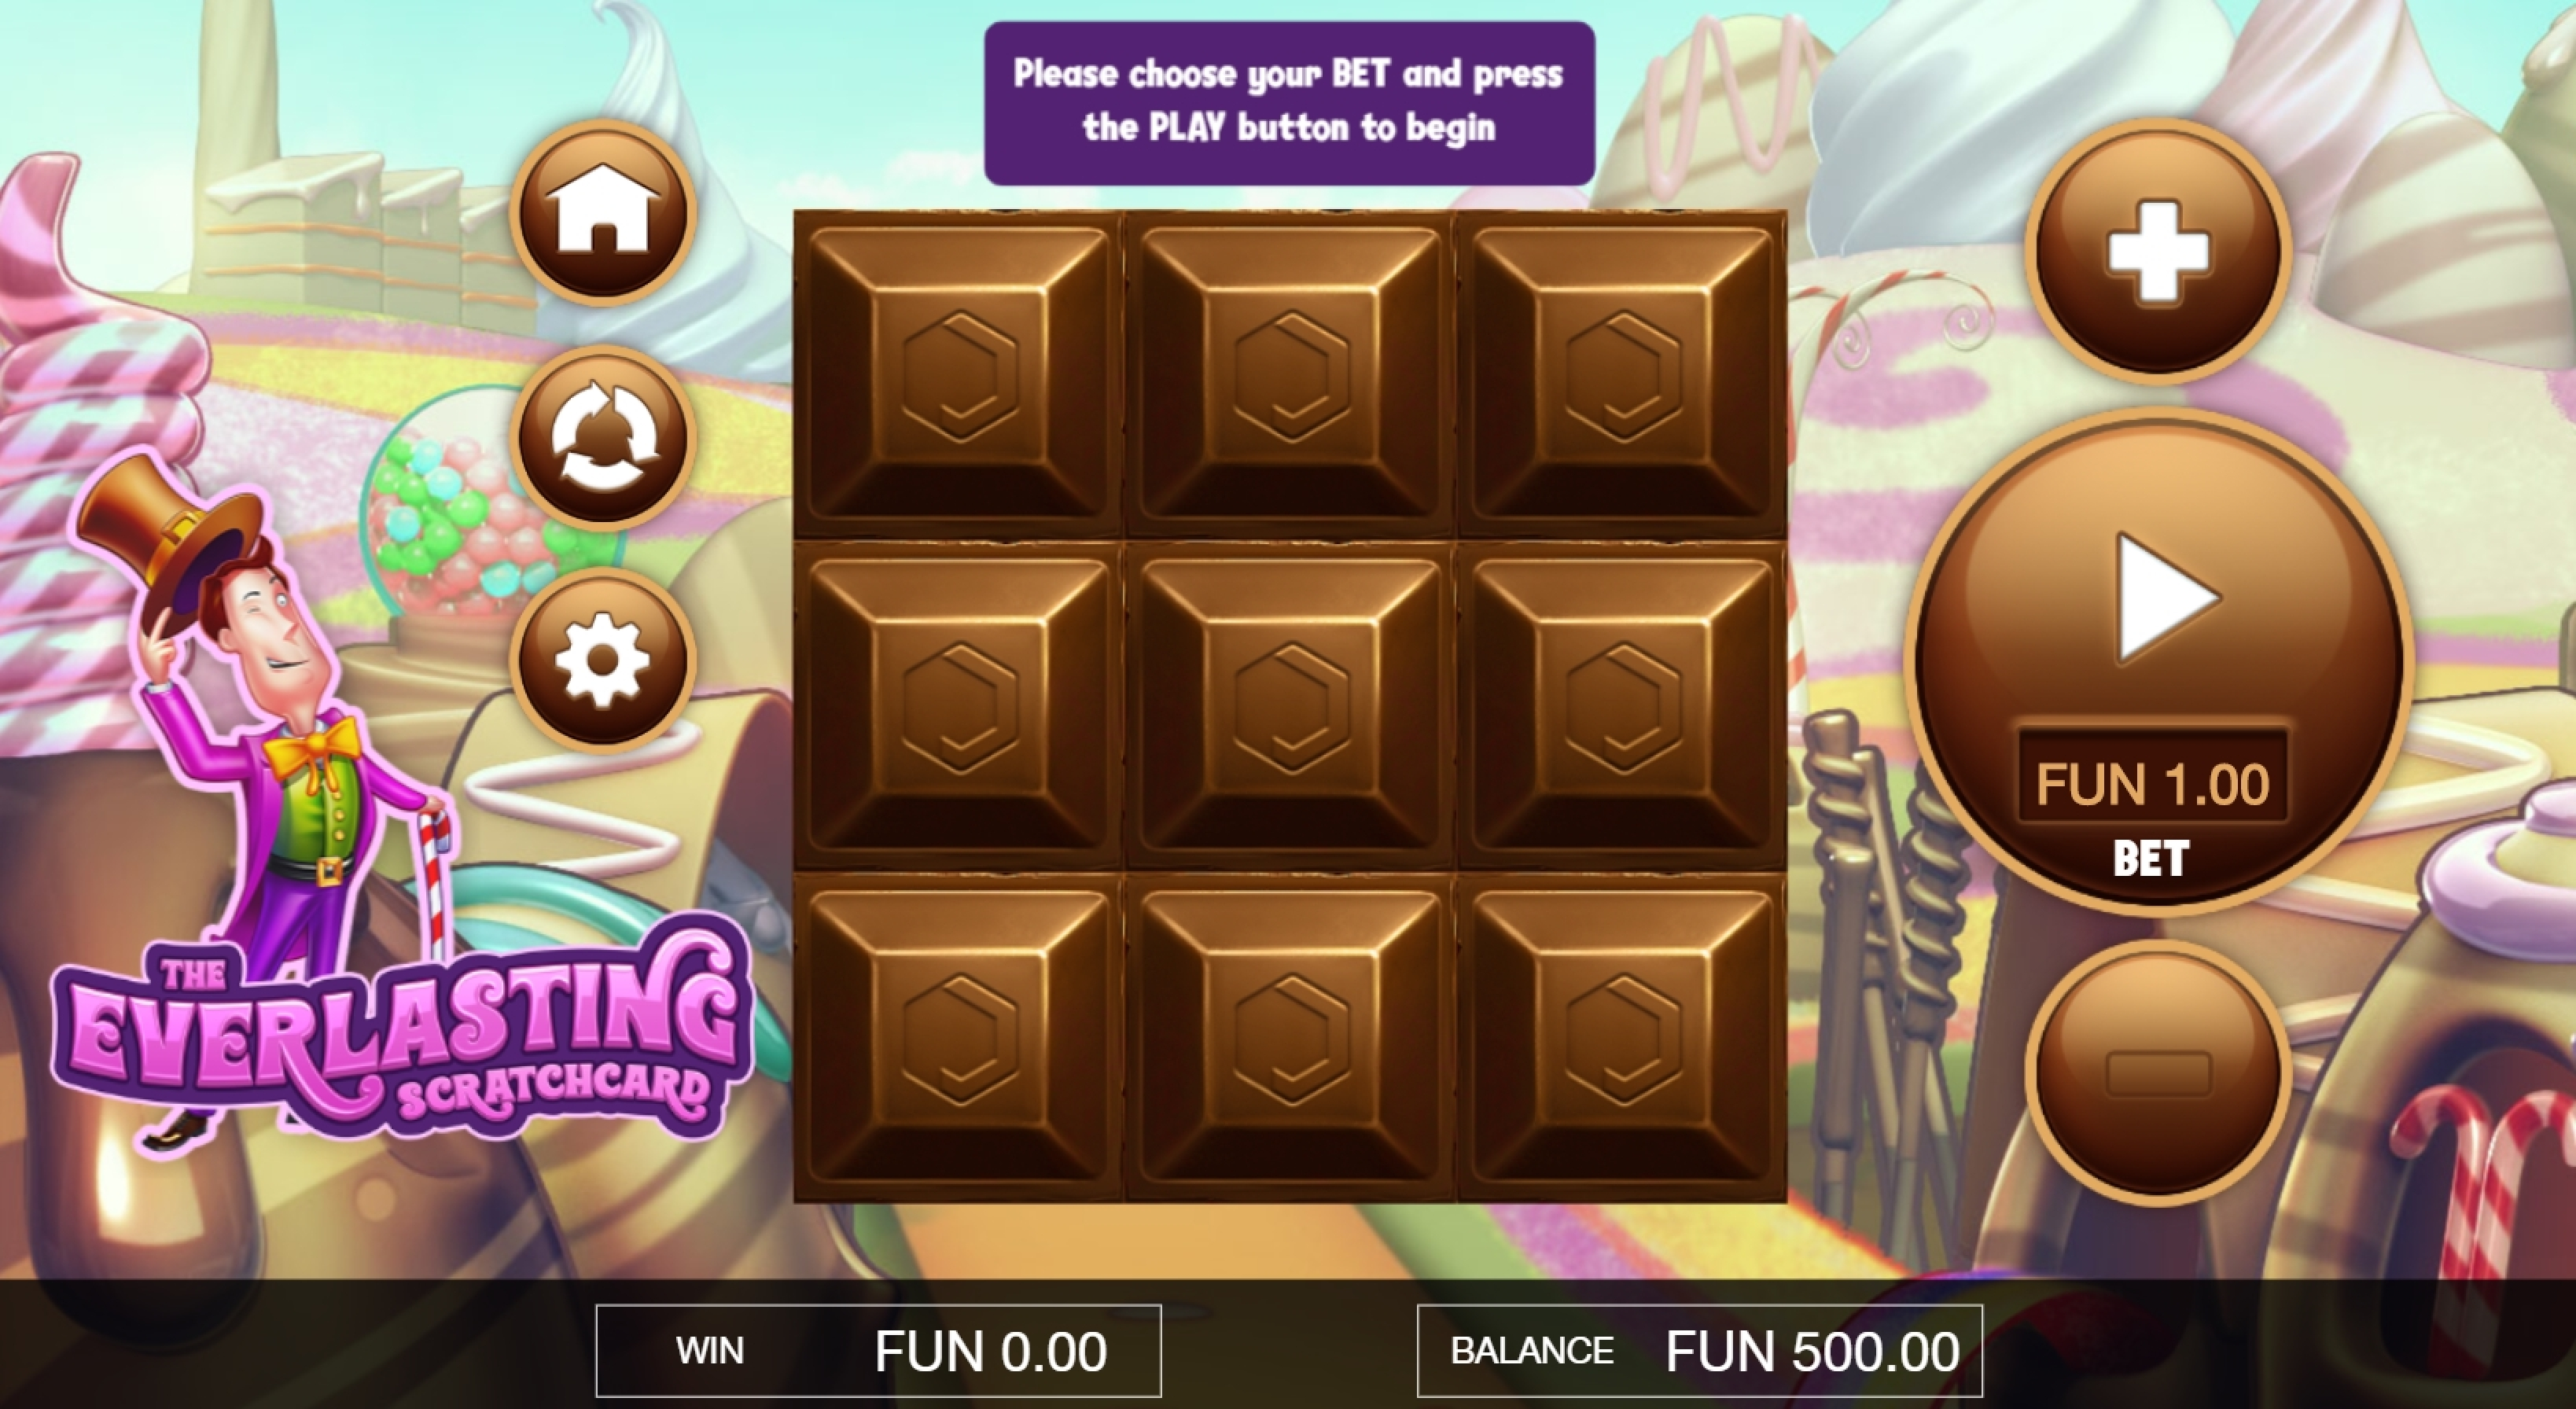 Reels in The Everlasting Scratchcard Slot Game by Probability Jones